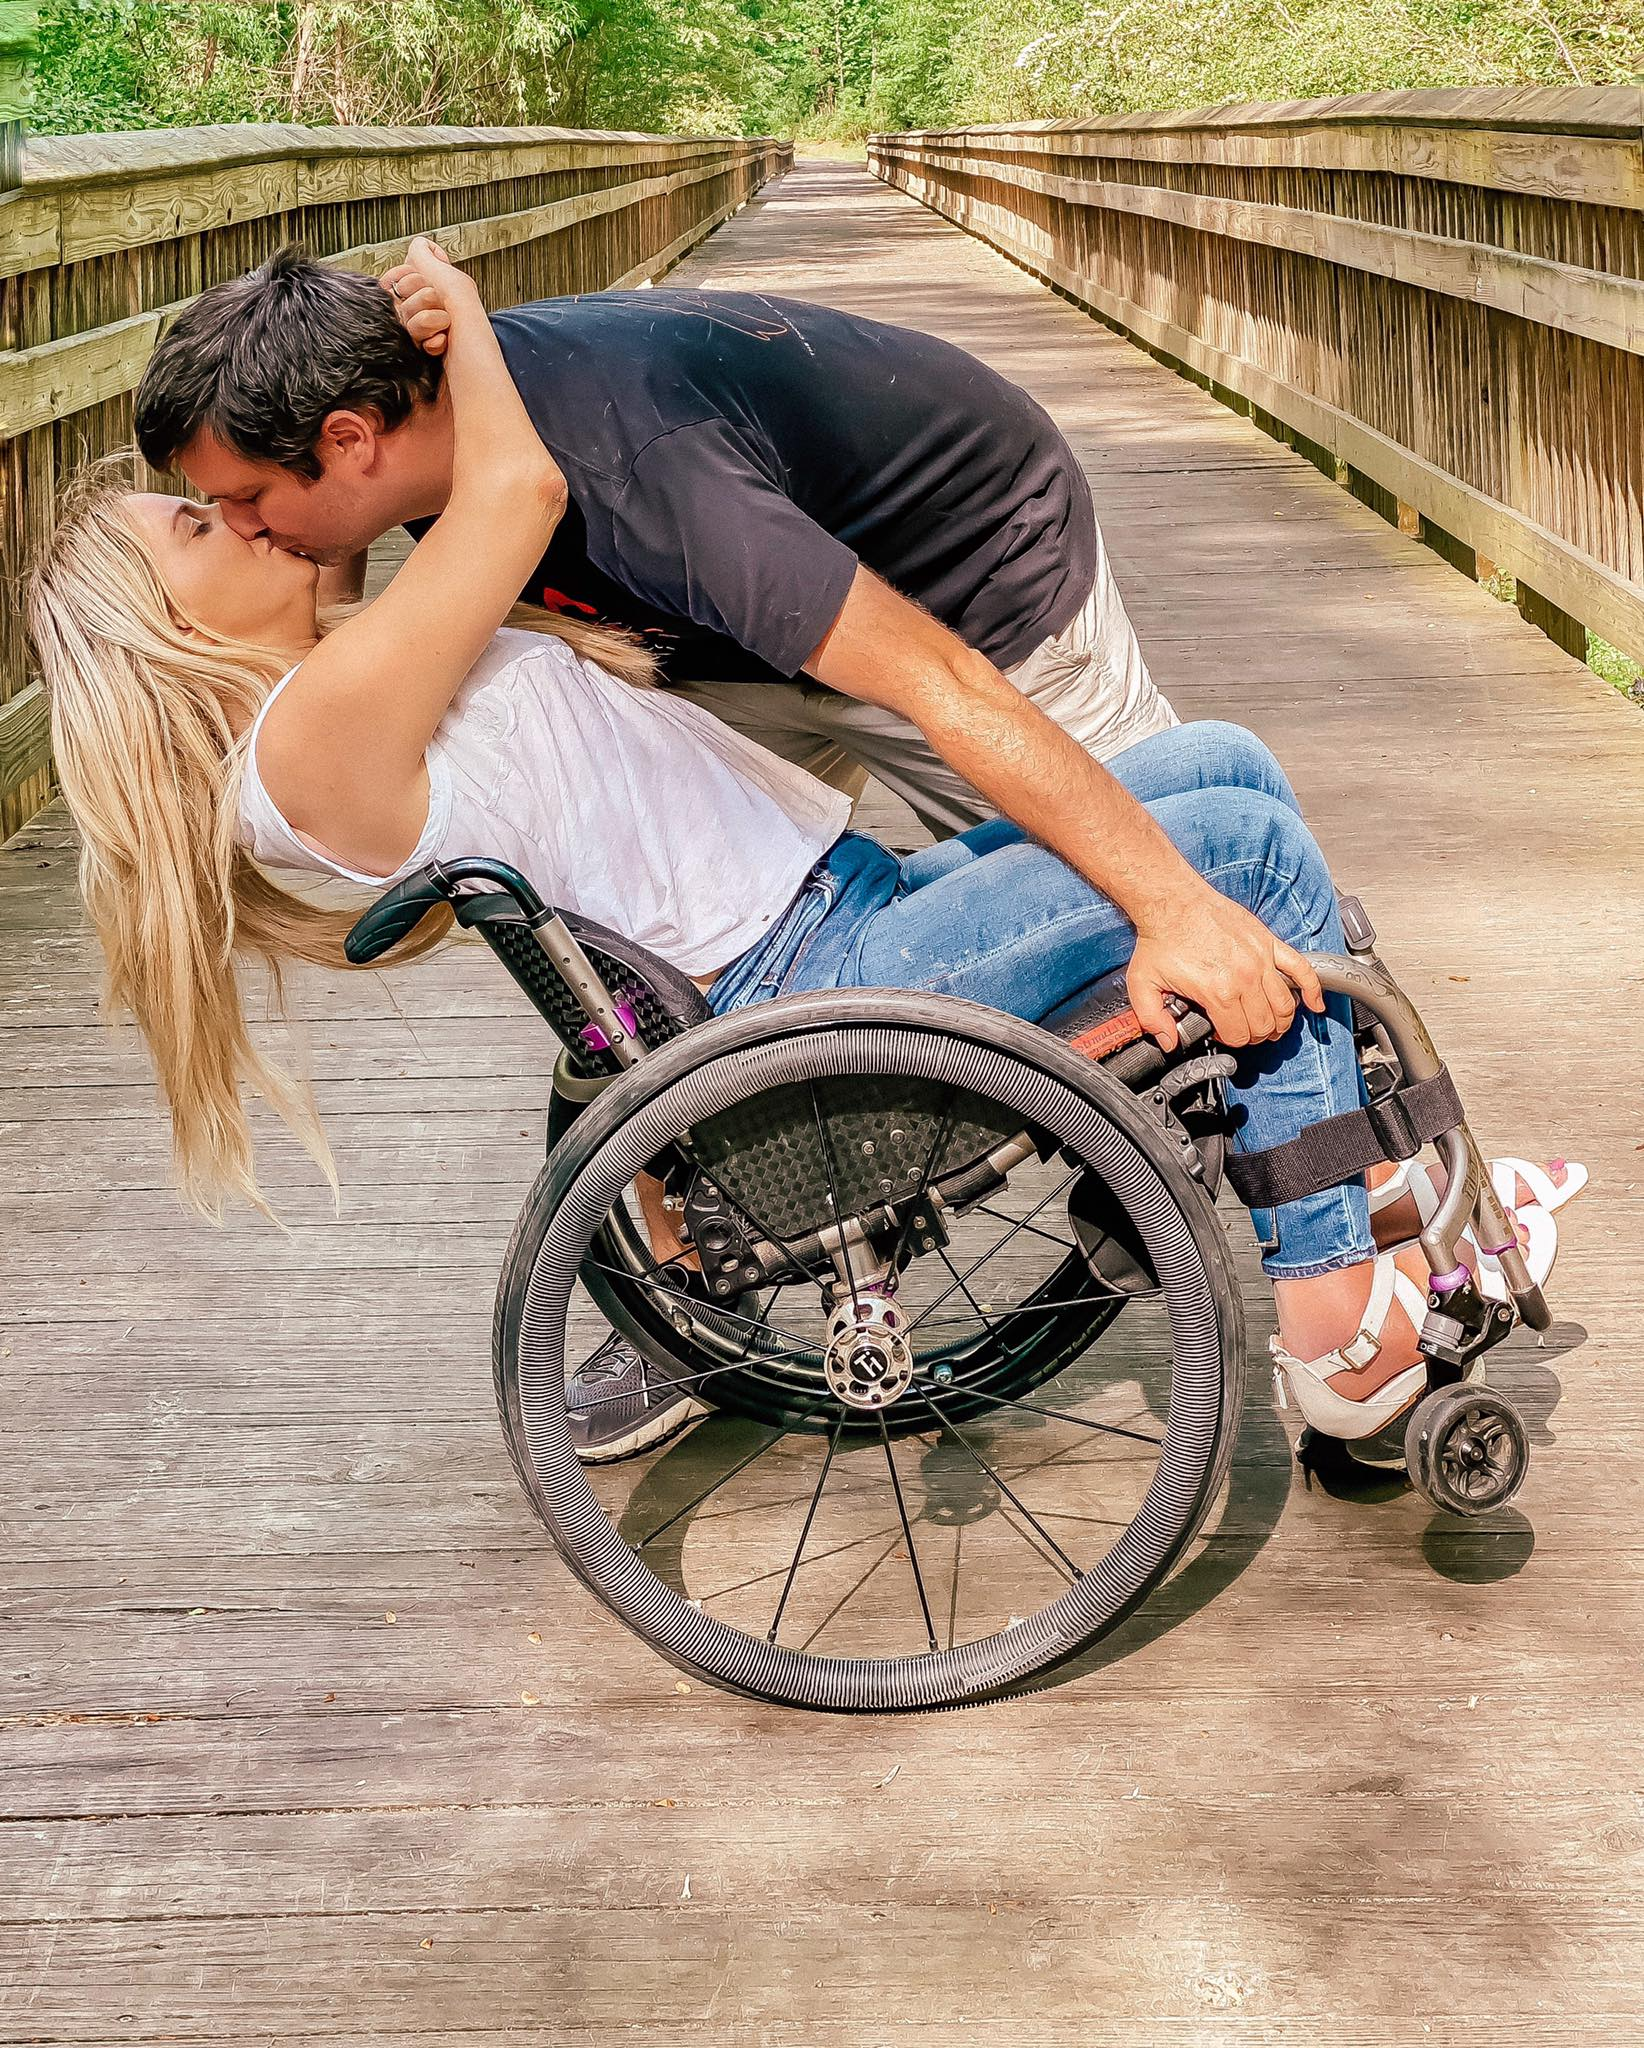 Rachelle Chapman's wedding to Chris was delayed after she suffered paralysis from an accident at her bachlorette party.